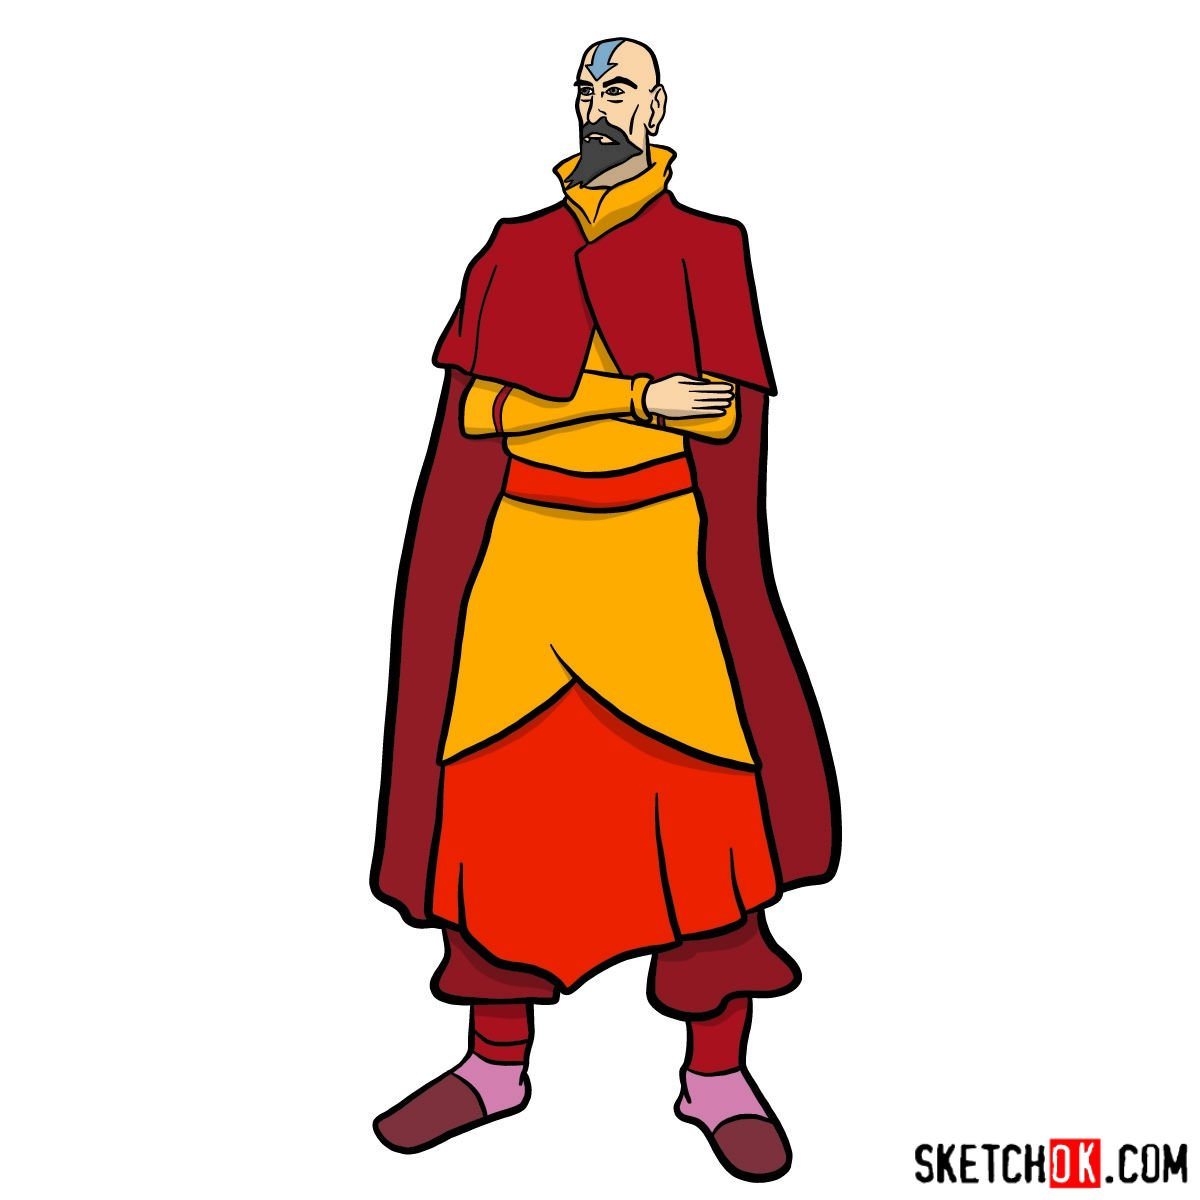 How to draw Tenzin